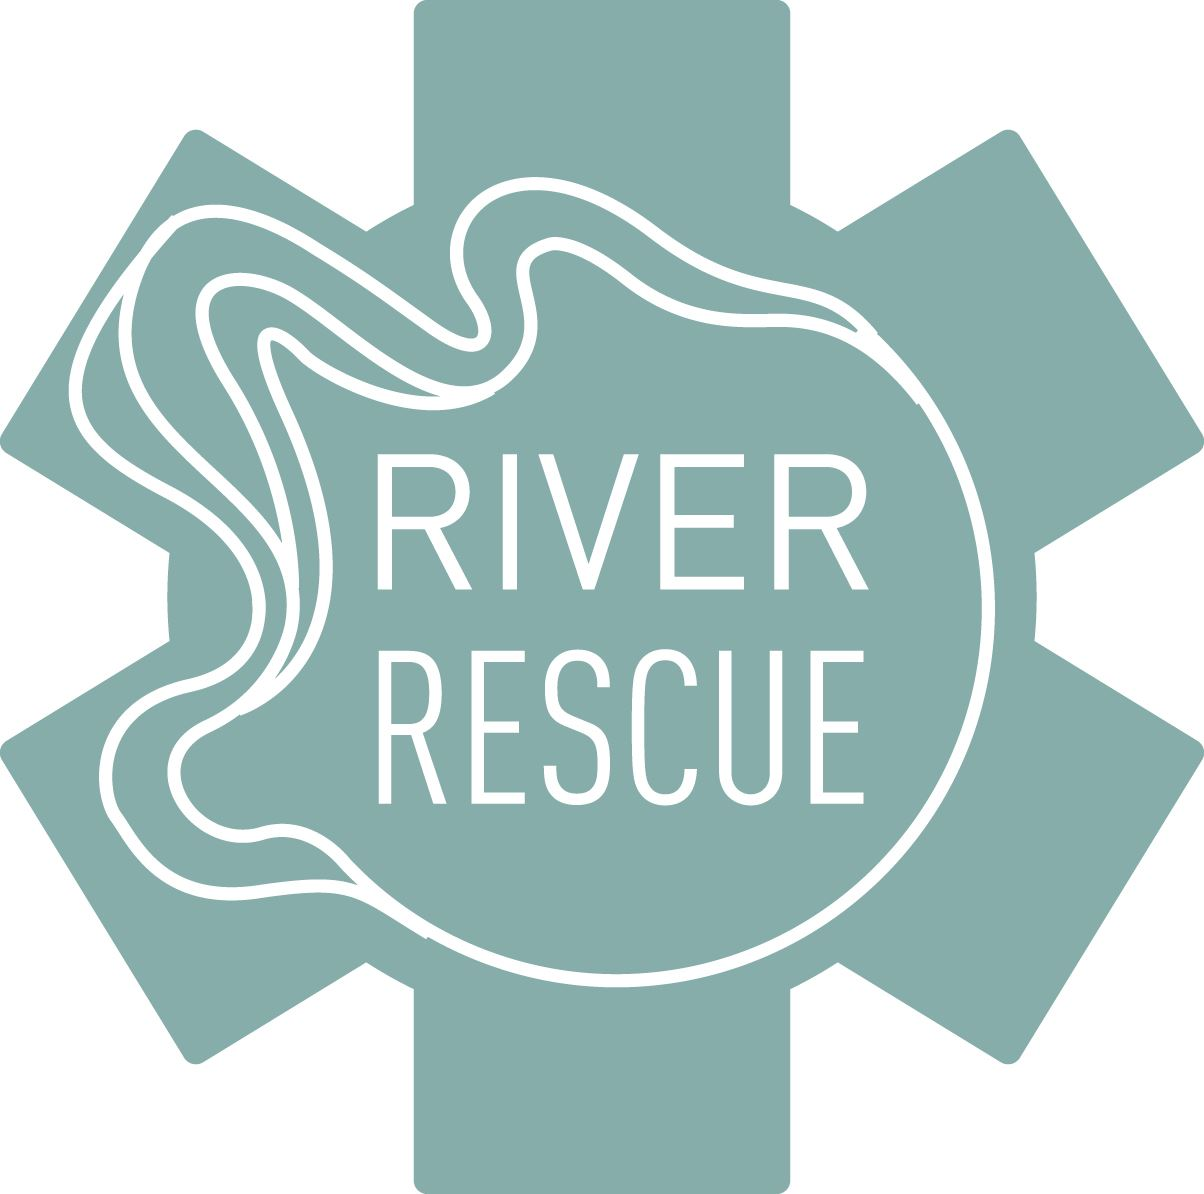 river rescue logo teal medical cross with river type lines